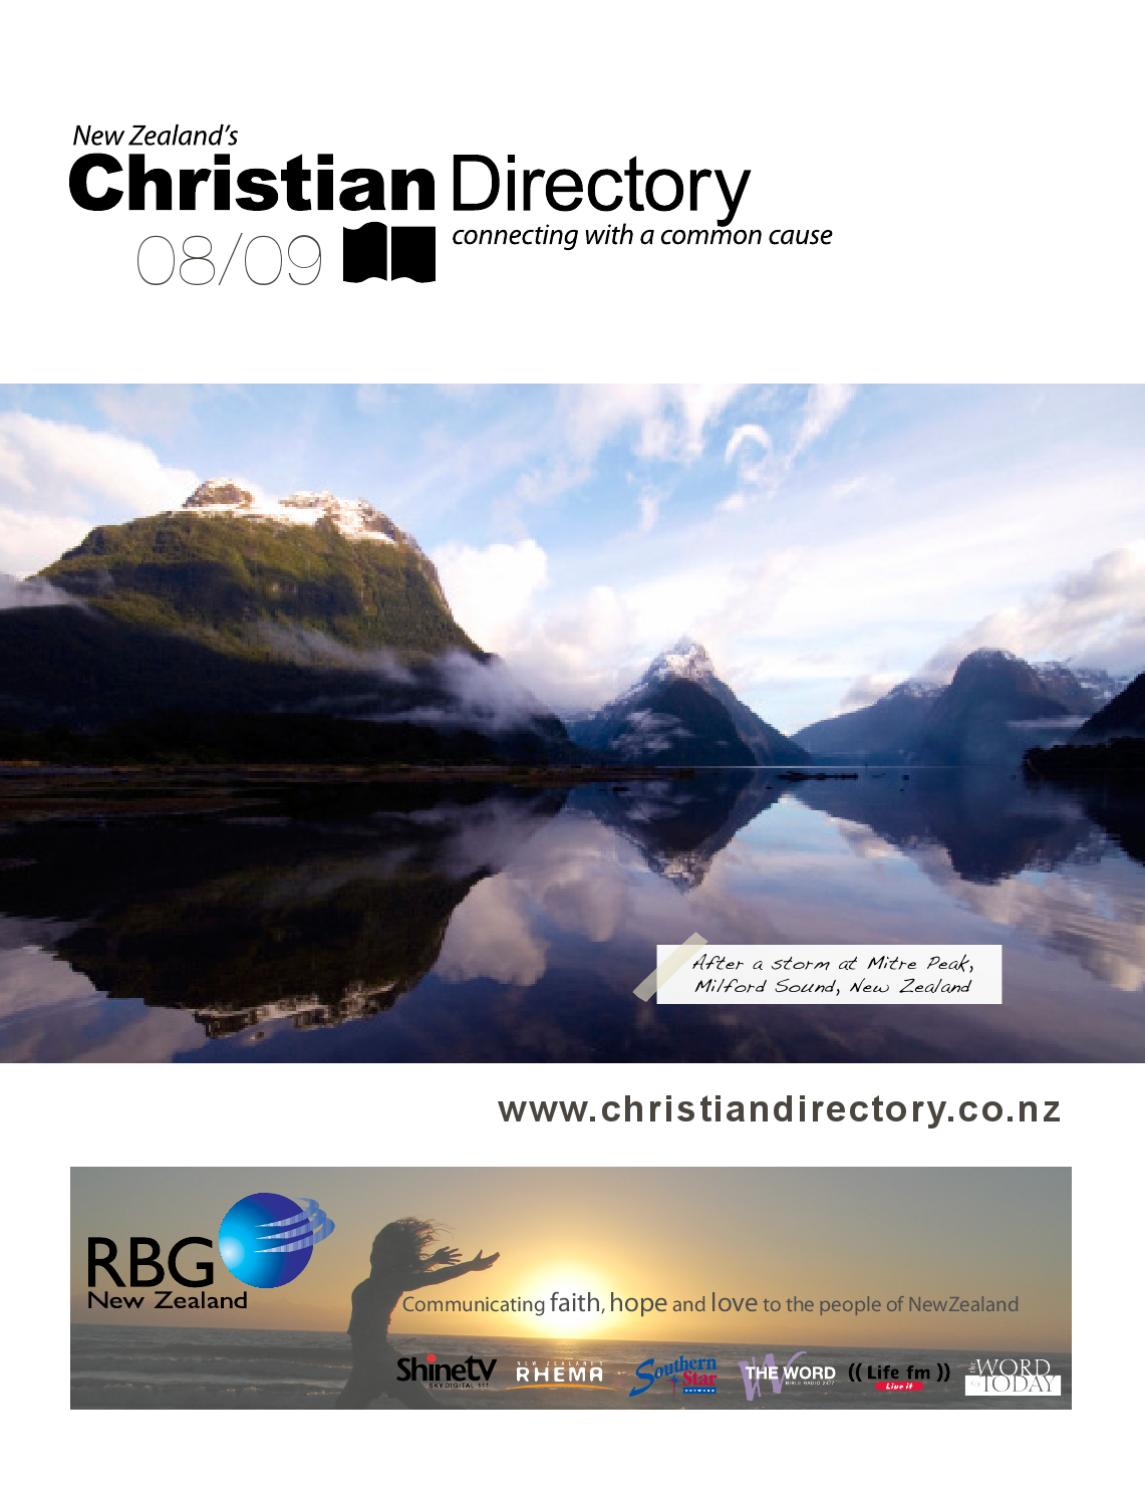 New zealand christian directory 2009 by initiate media issuu sciox Images